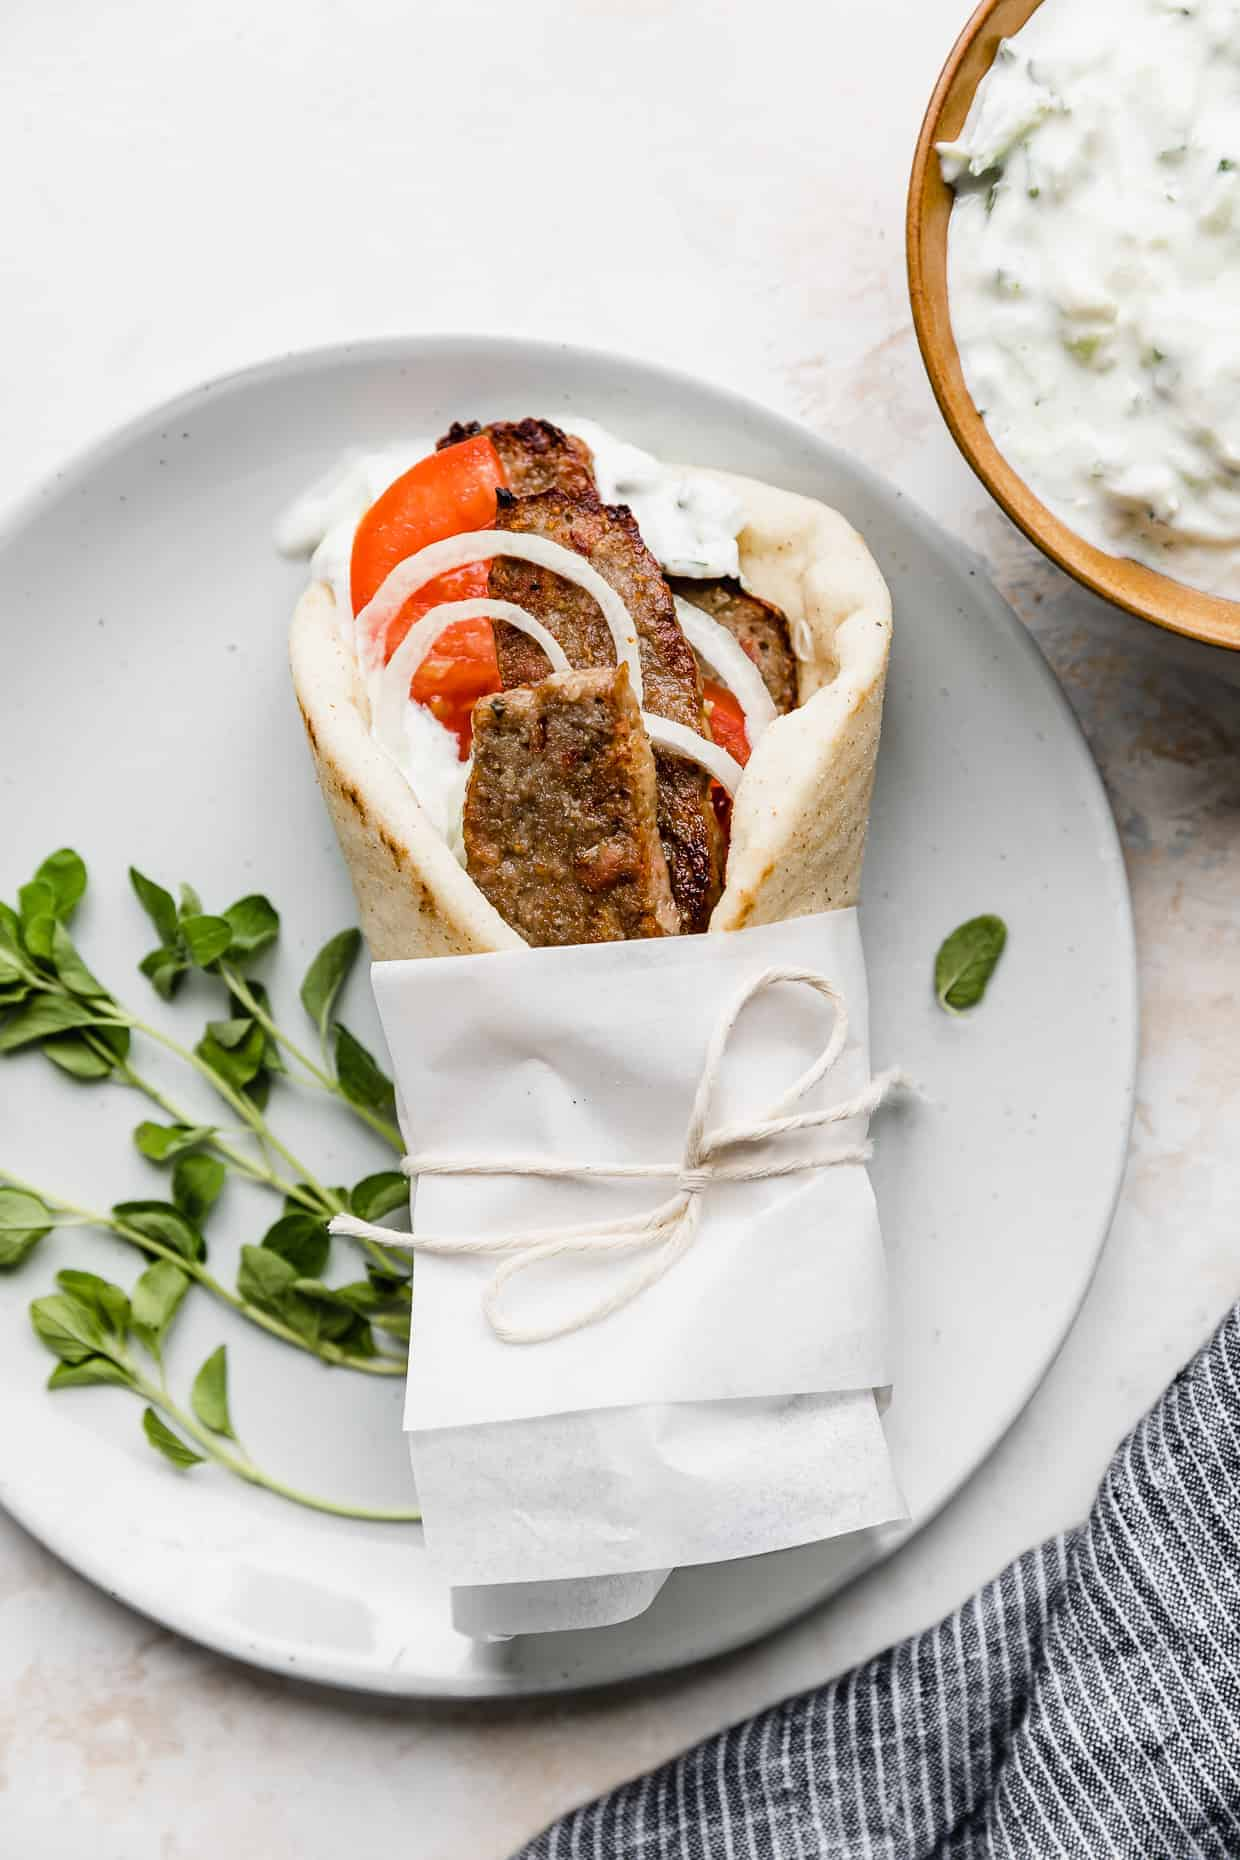 A lamb gyro wrapped in white parchment paper on a white plate.